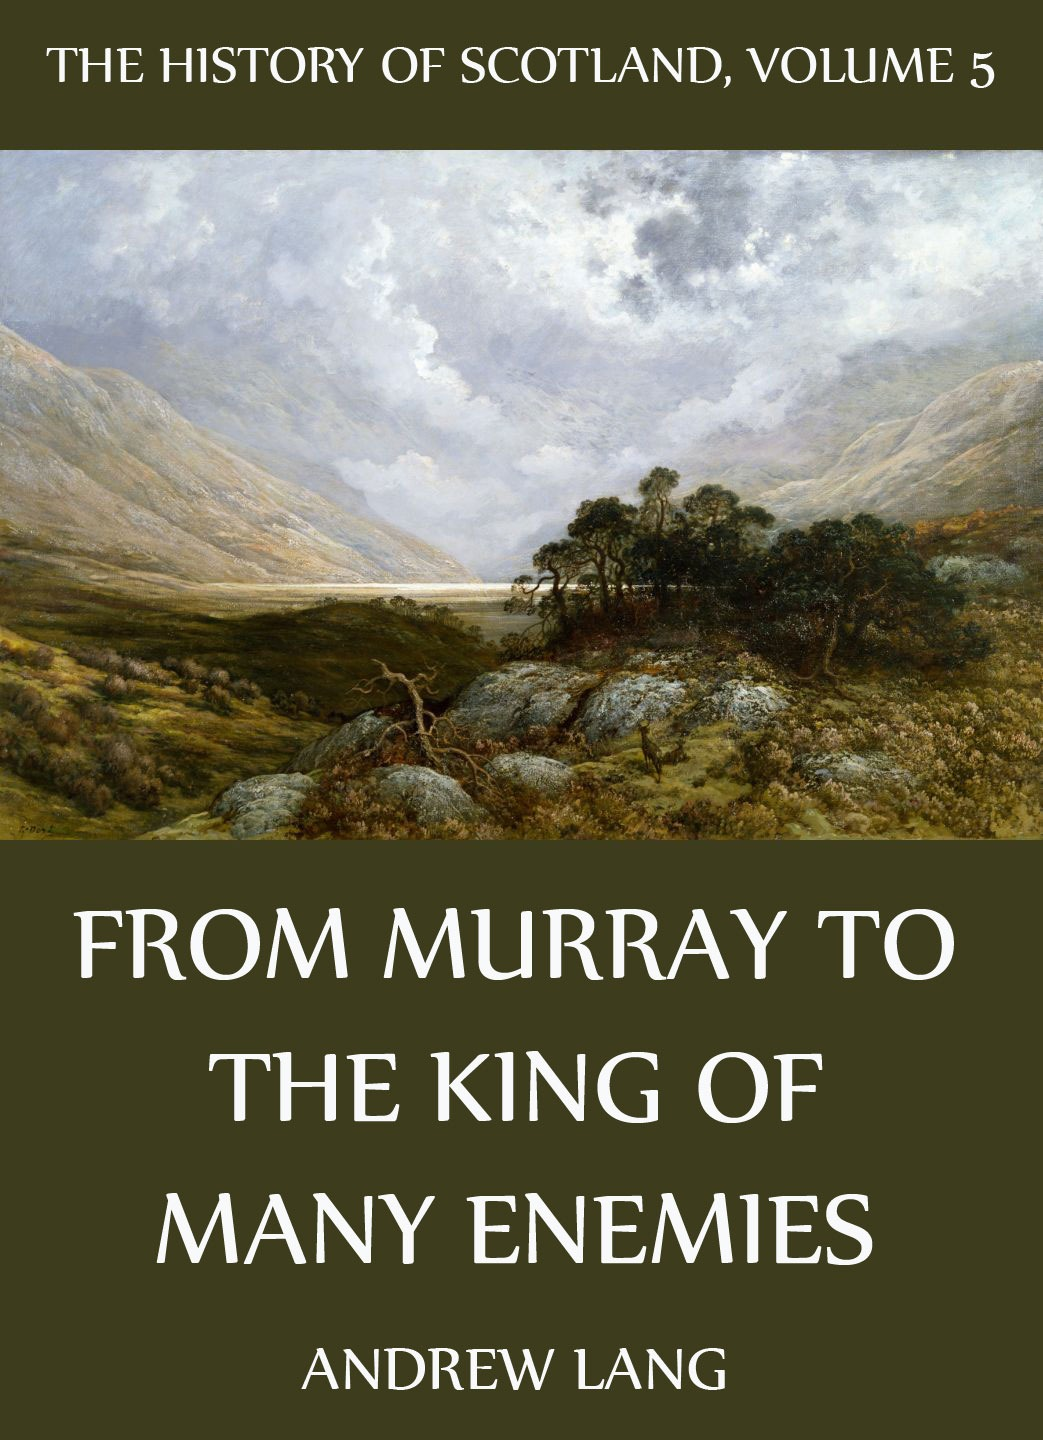 Andrew Lang The History Of Scotland - Volume 5: From Murray To The King Of Many Enemies sean lang european history for dummies